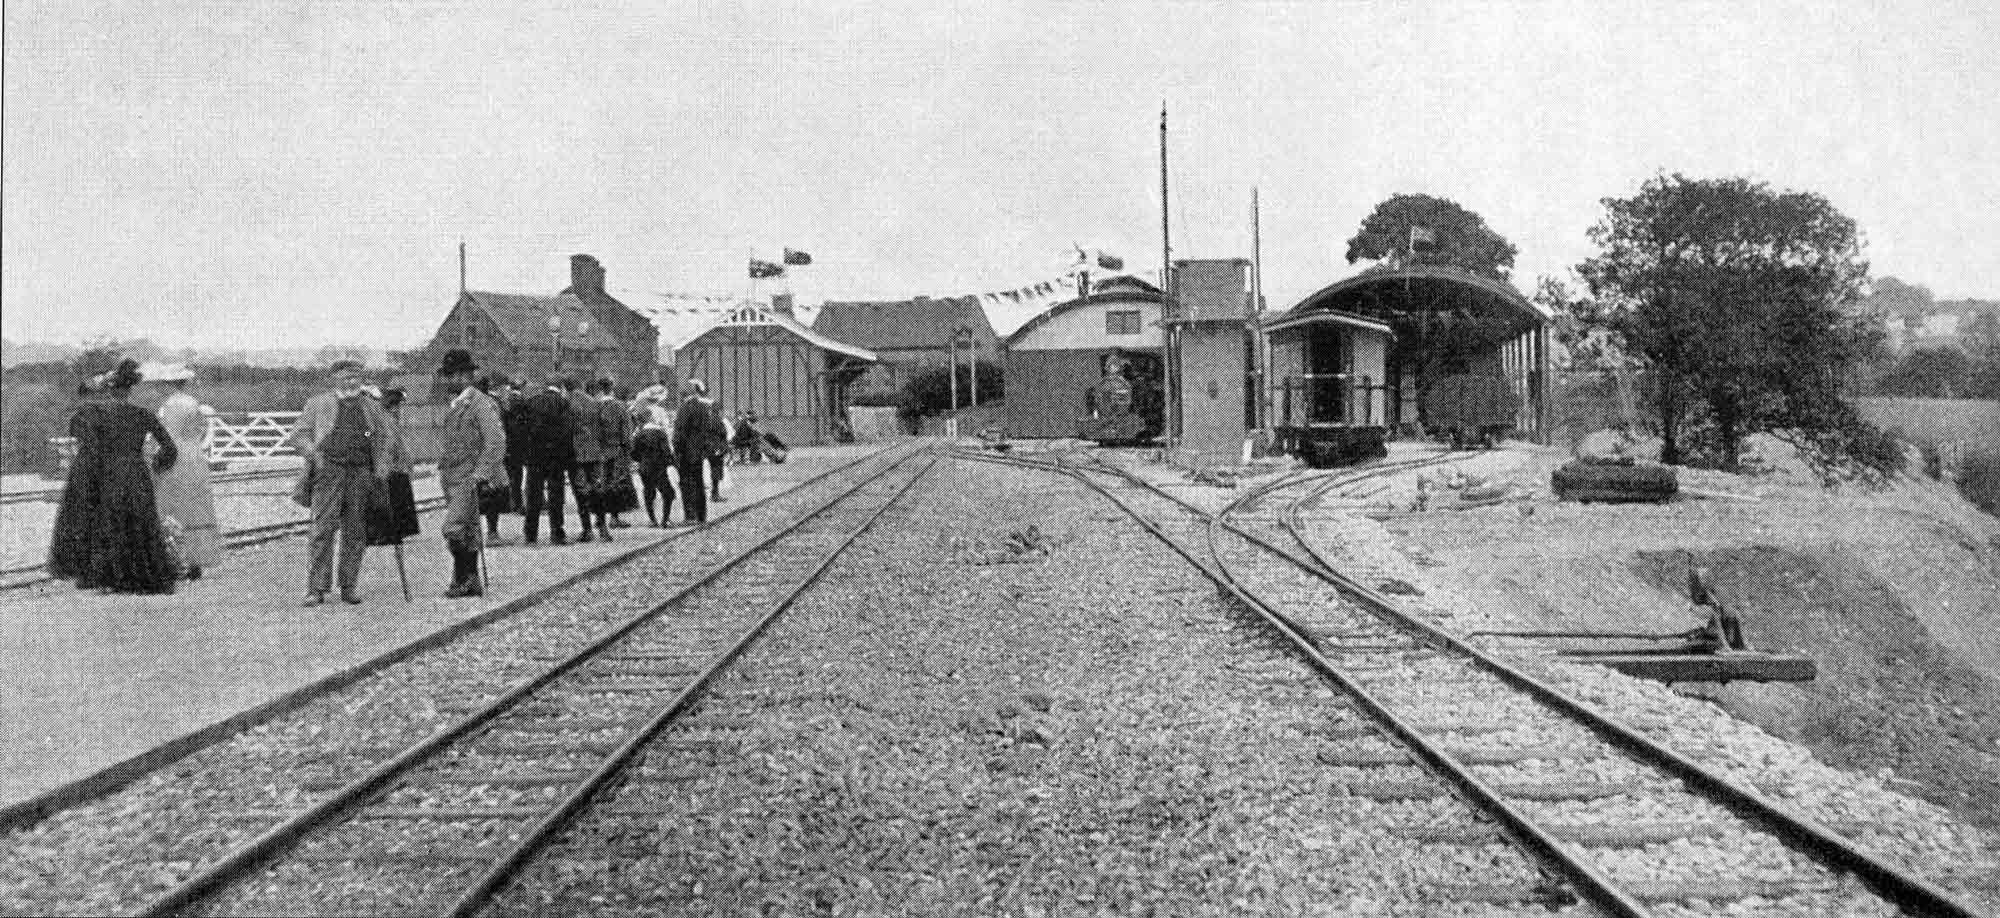 Hulme End railway station historic photograph 2